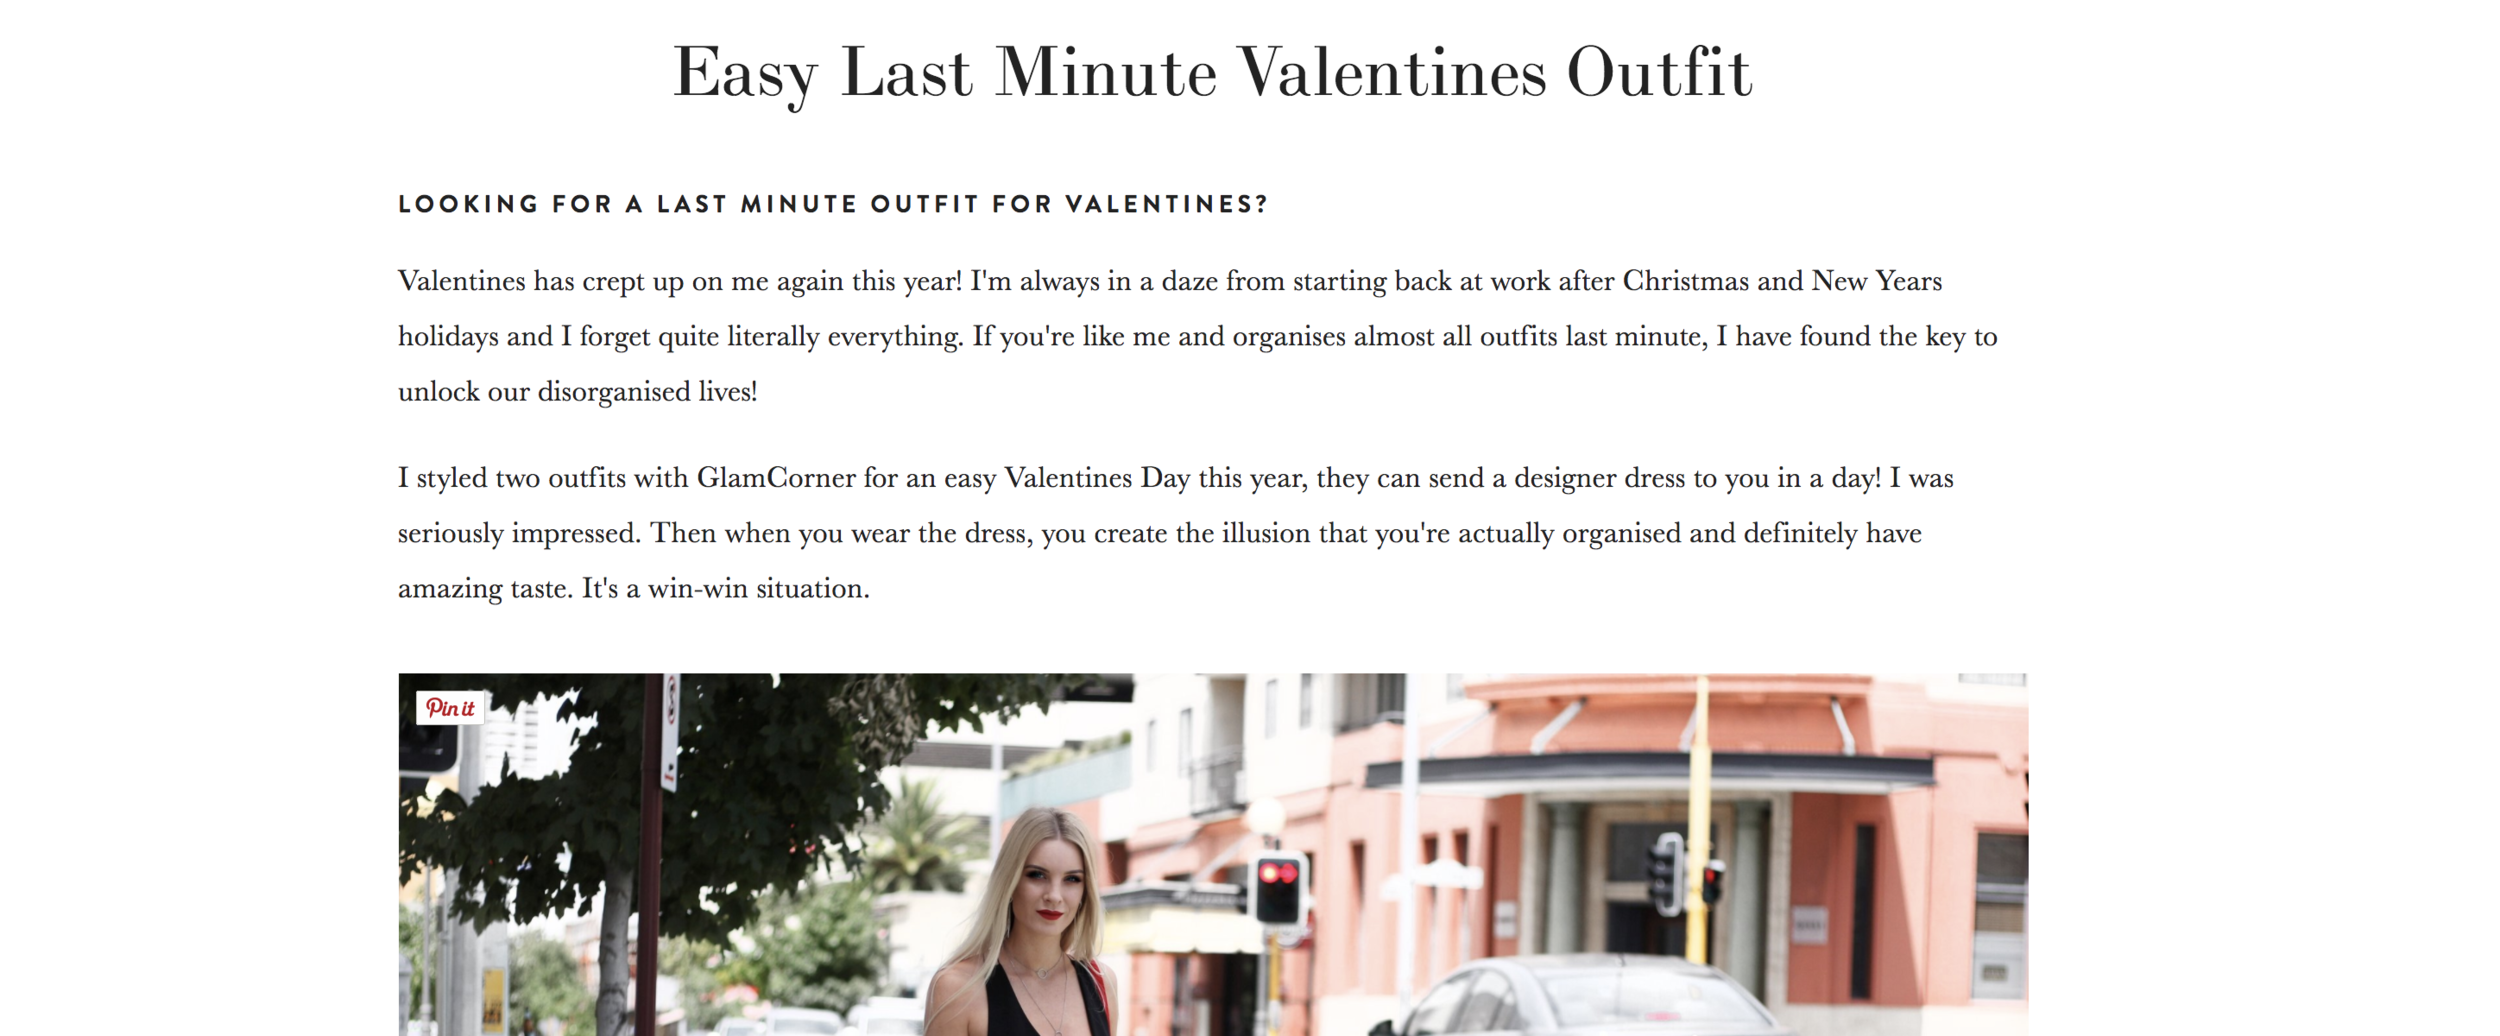 Quick Valentines Outfit Online